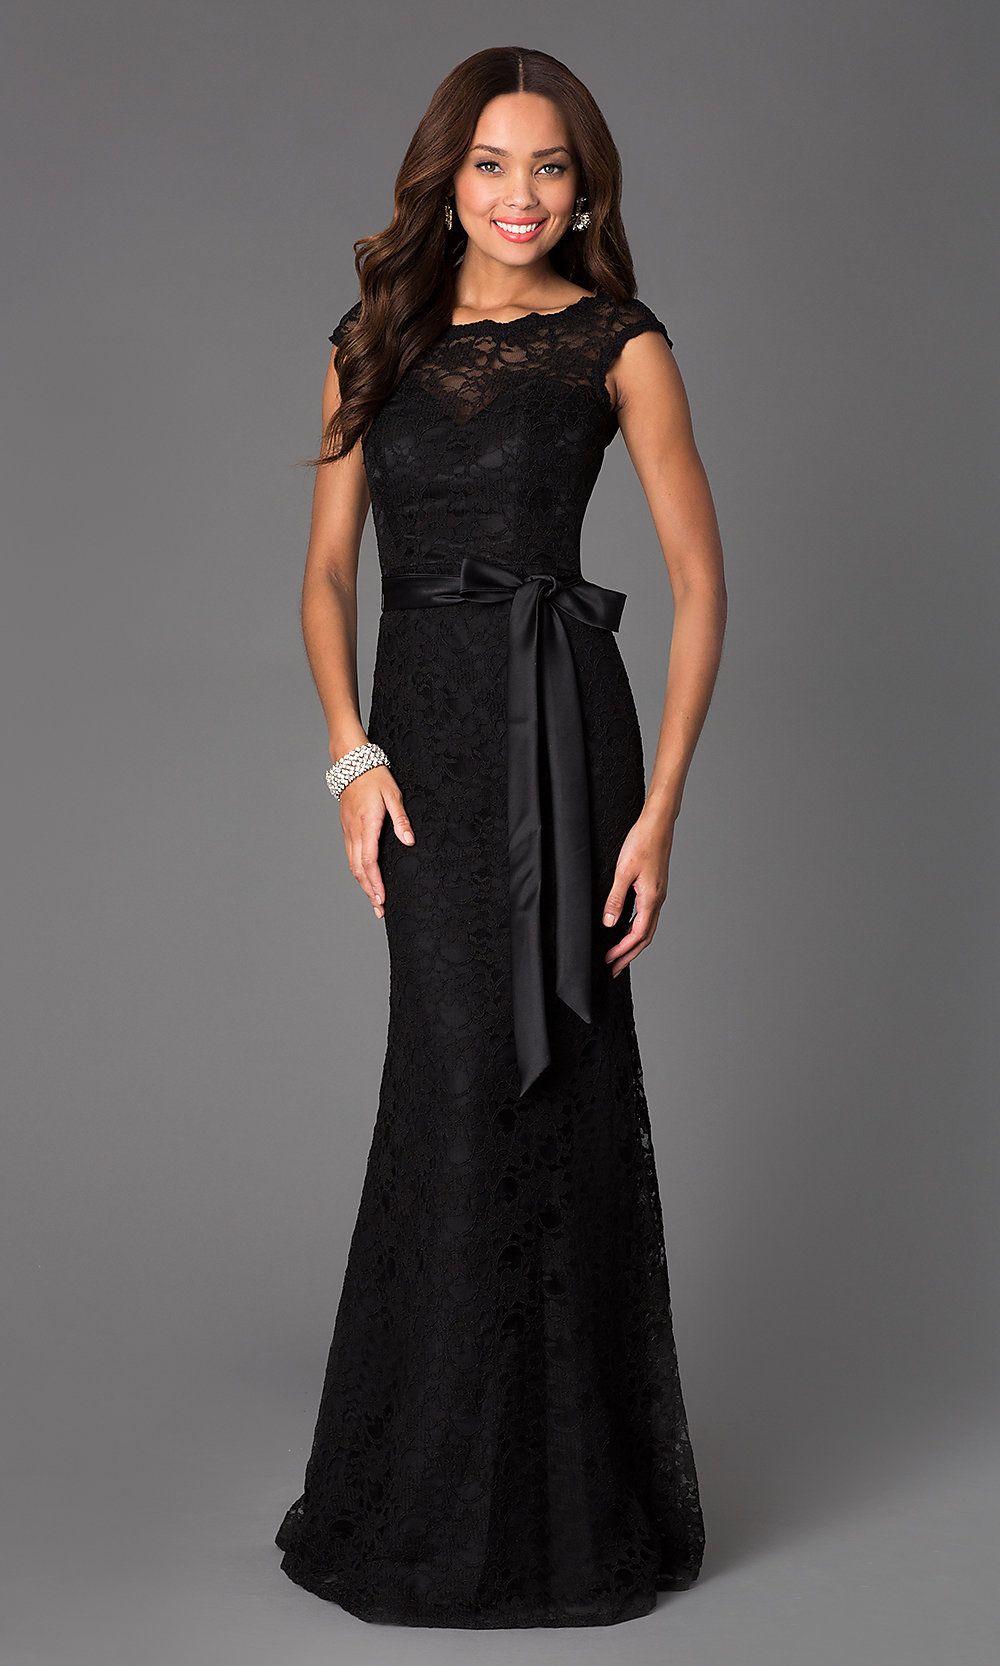 Sleek Evening Gowns, Sexy Prom Dresses - PromGirl